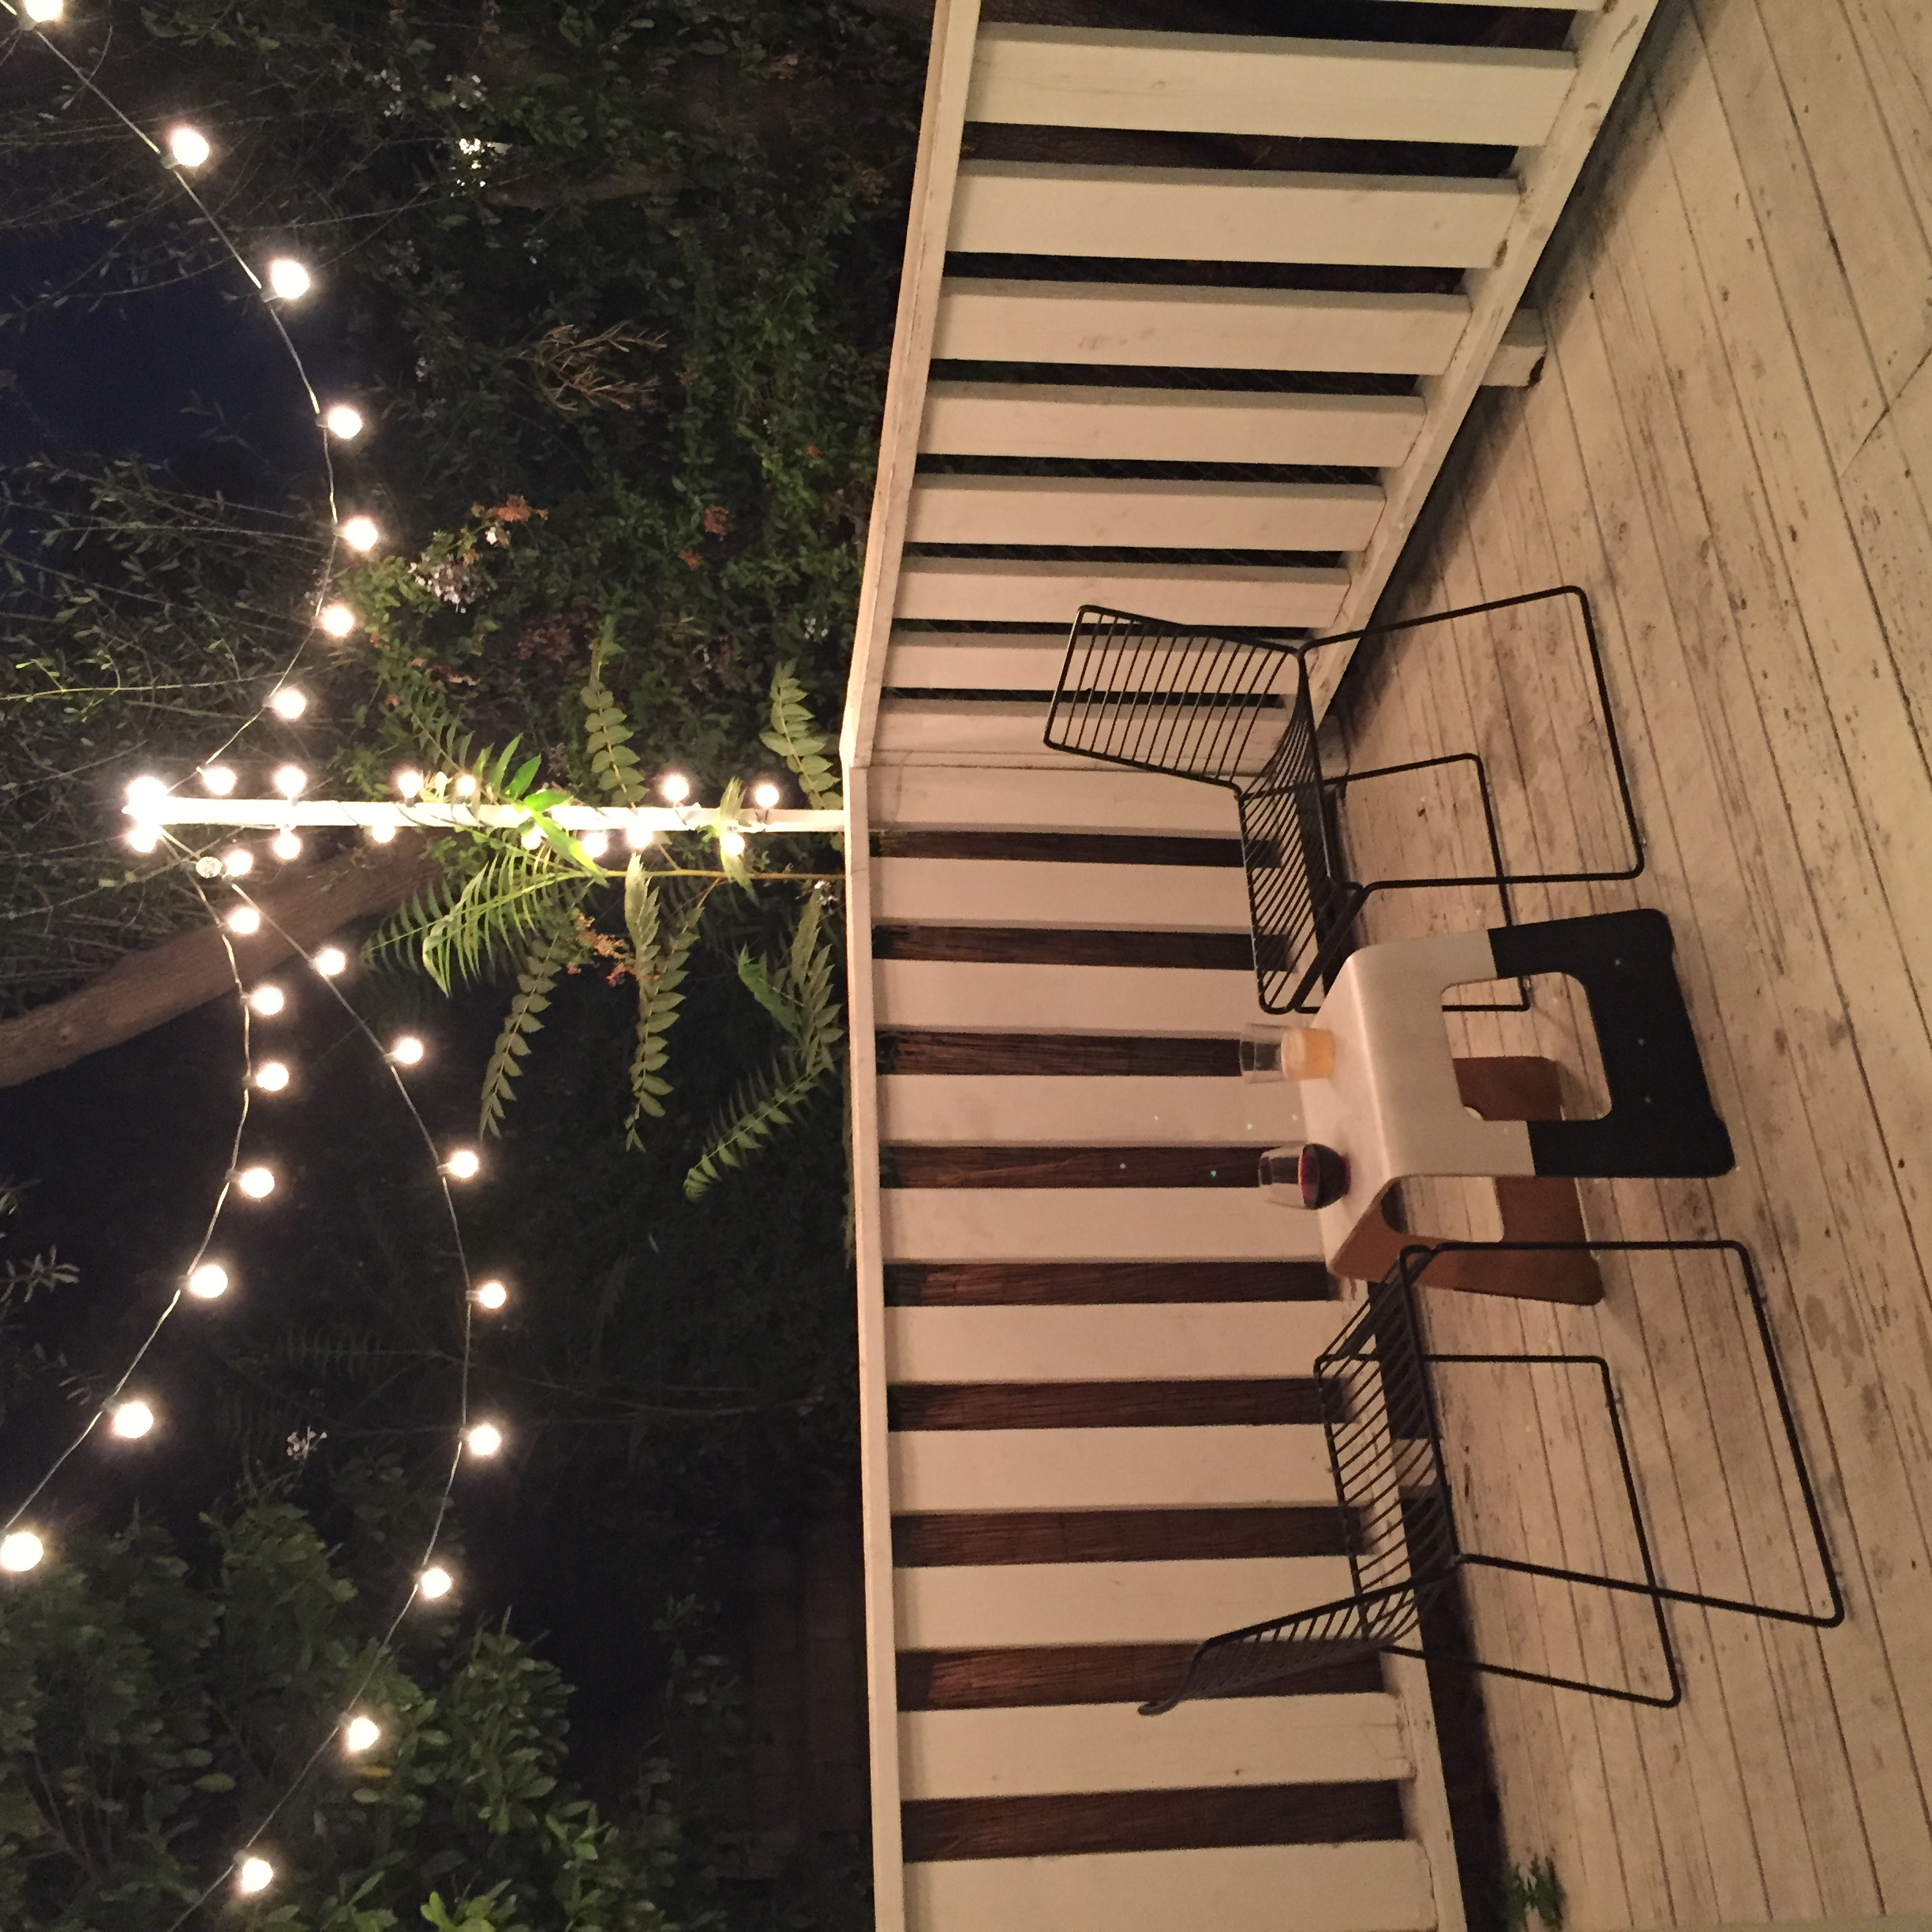 Molly's charming Silver Lake deck. our drinks of choice: red wine for Molly, French 75 for Taylor.